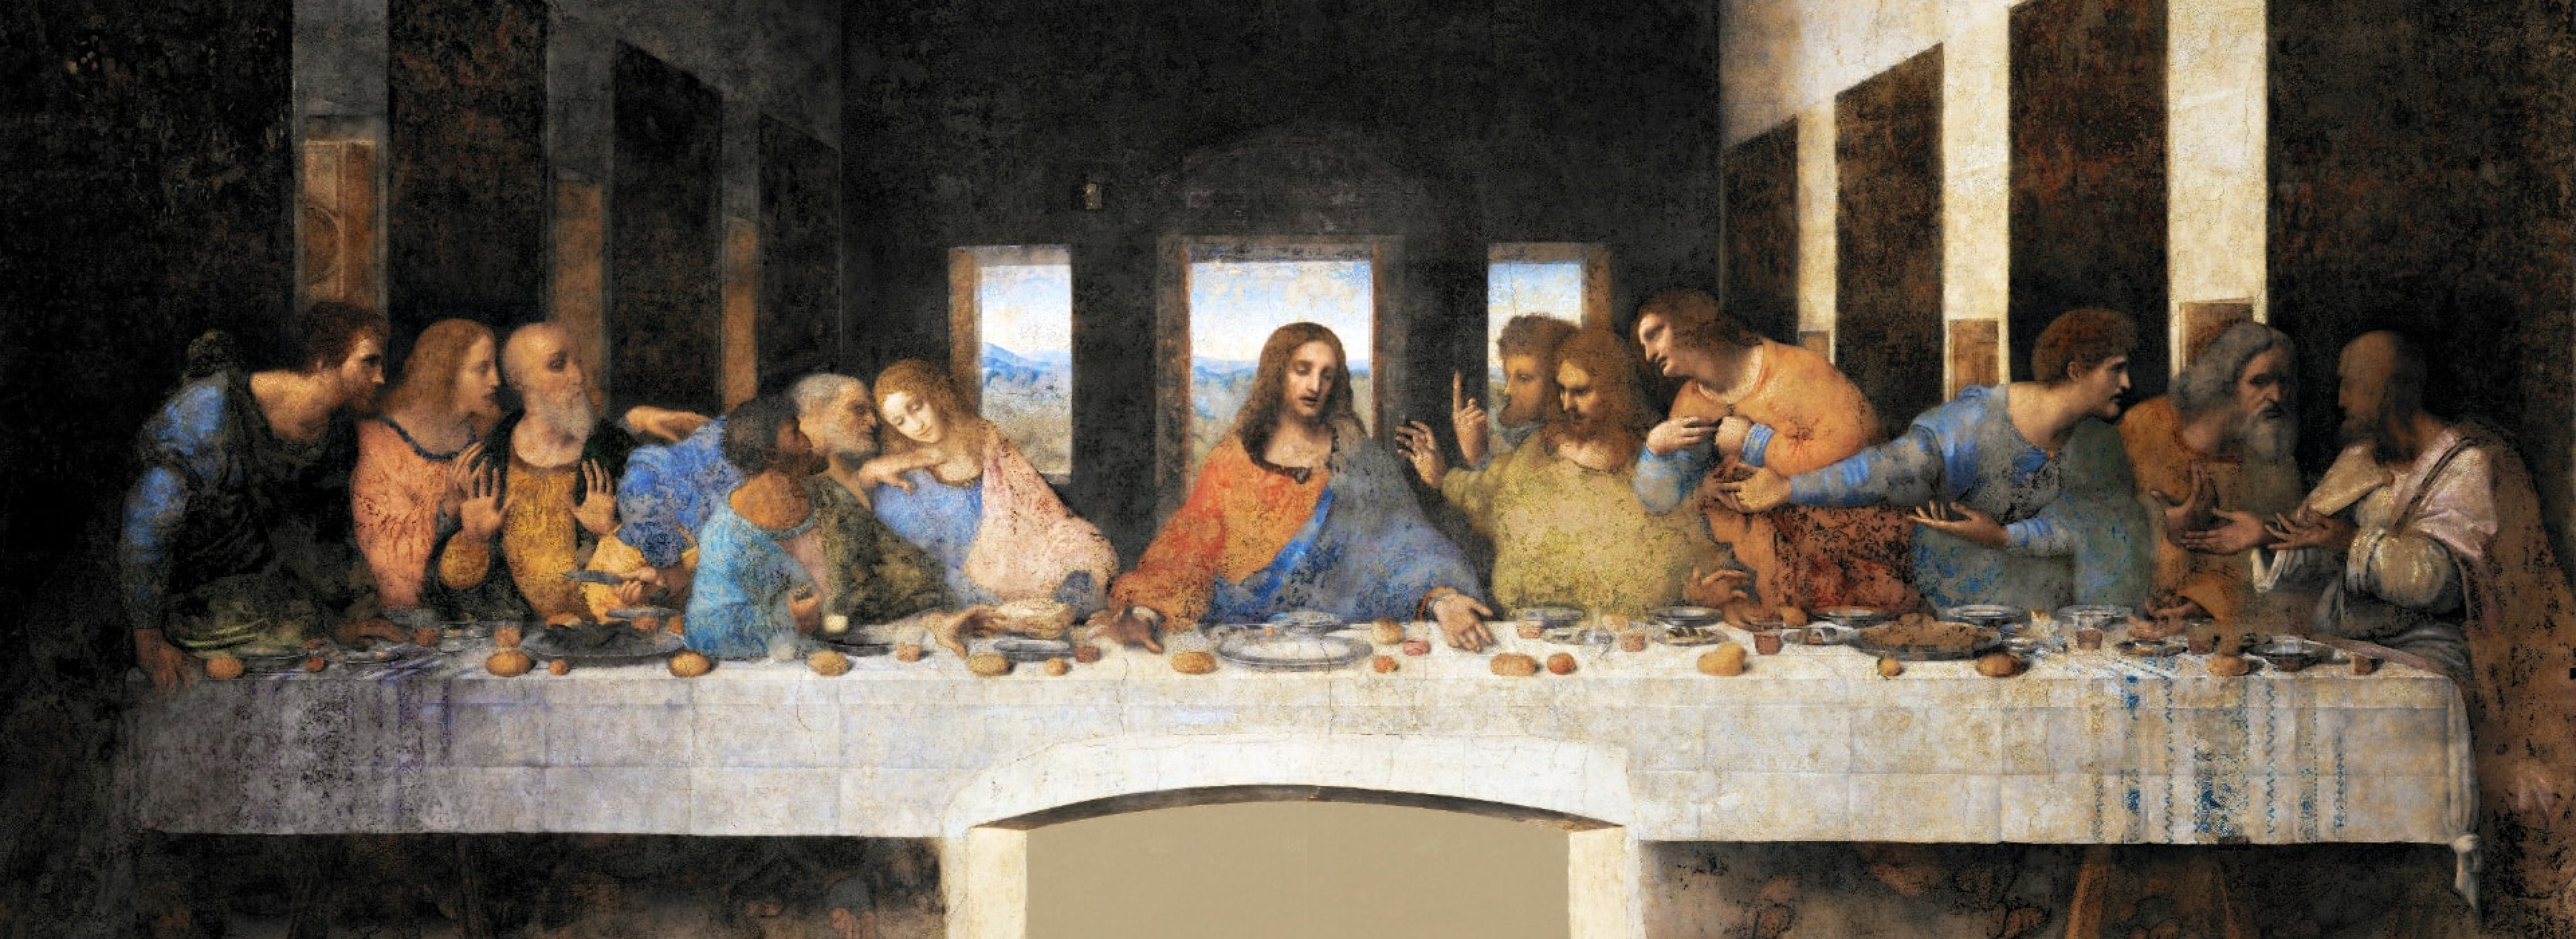 Last Supper, Milan